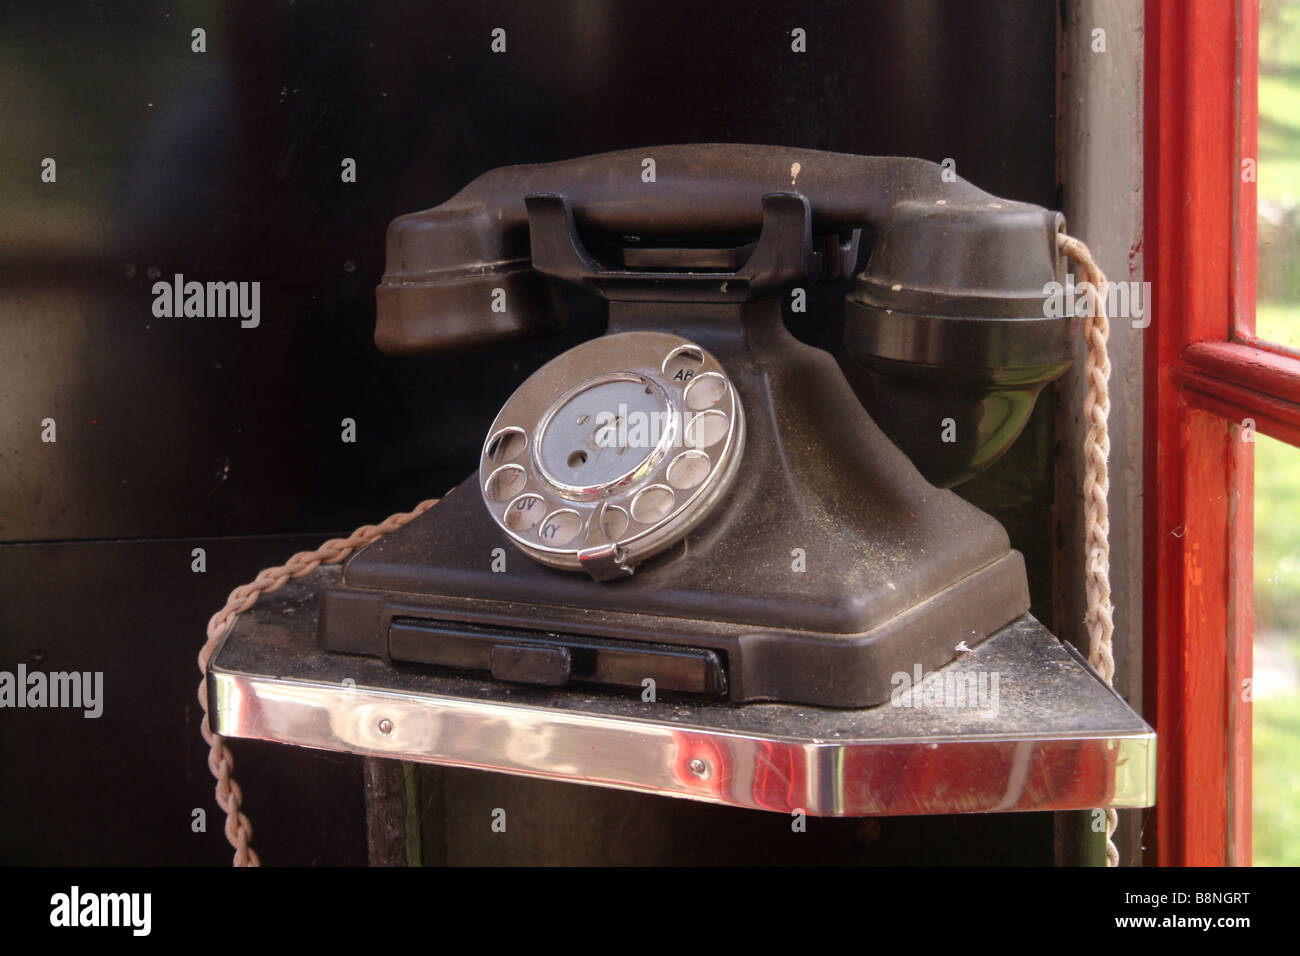 Original GPO 1/232 bakelite finger dial telephone with drawer in a 1940's public telephone box - Stock Image